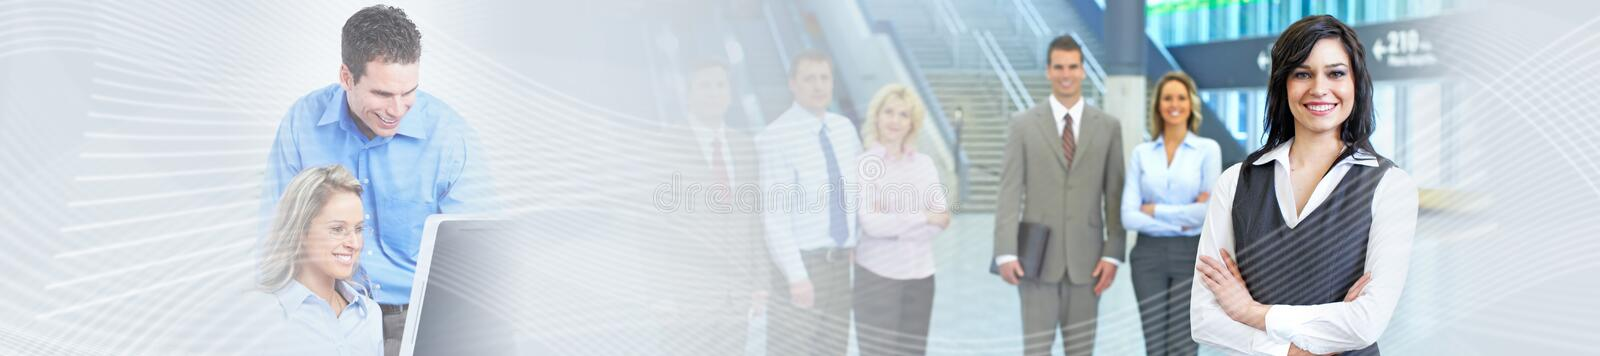 Business background. Business people group over abstract financial background stock image